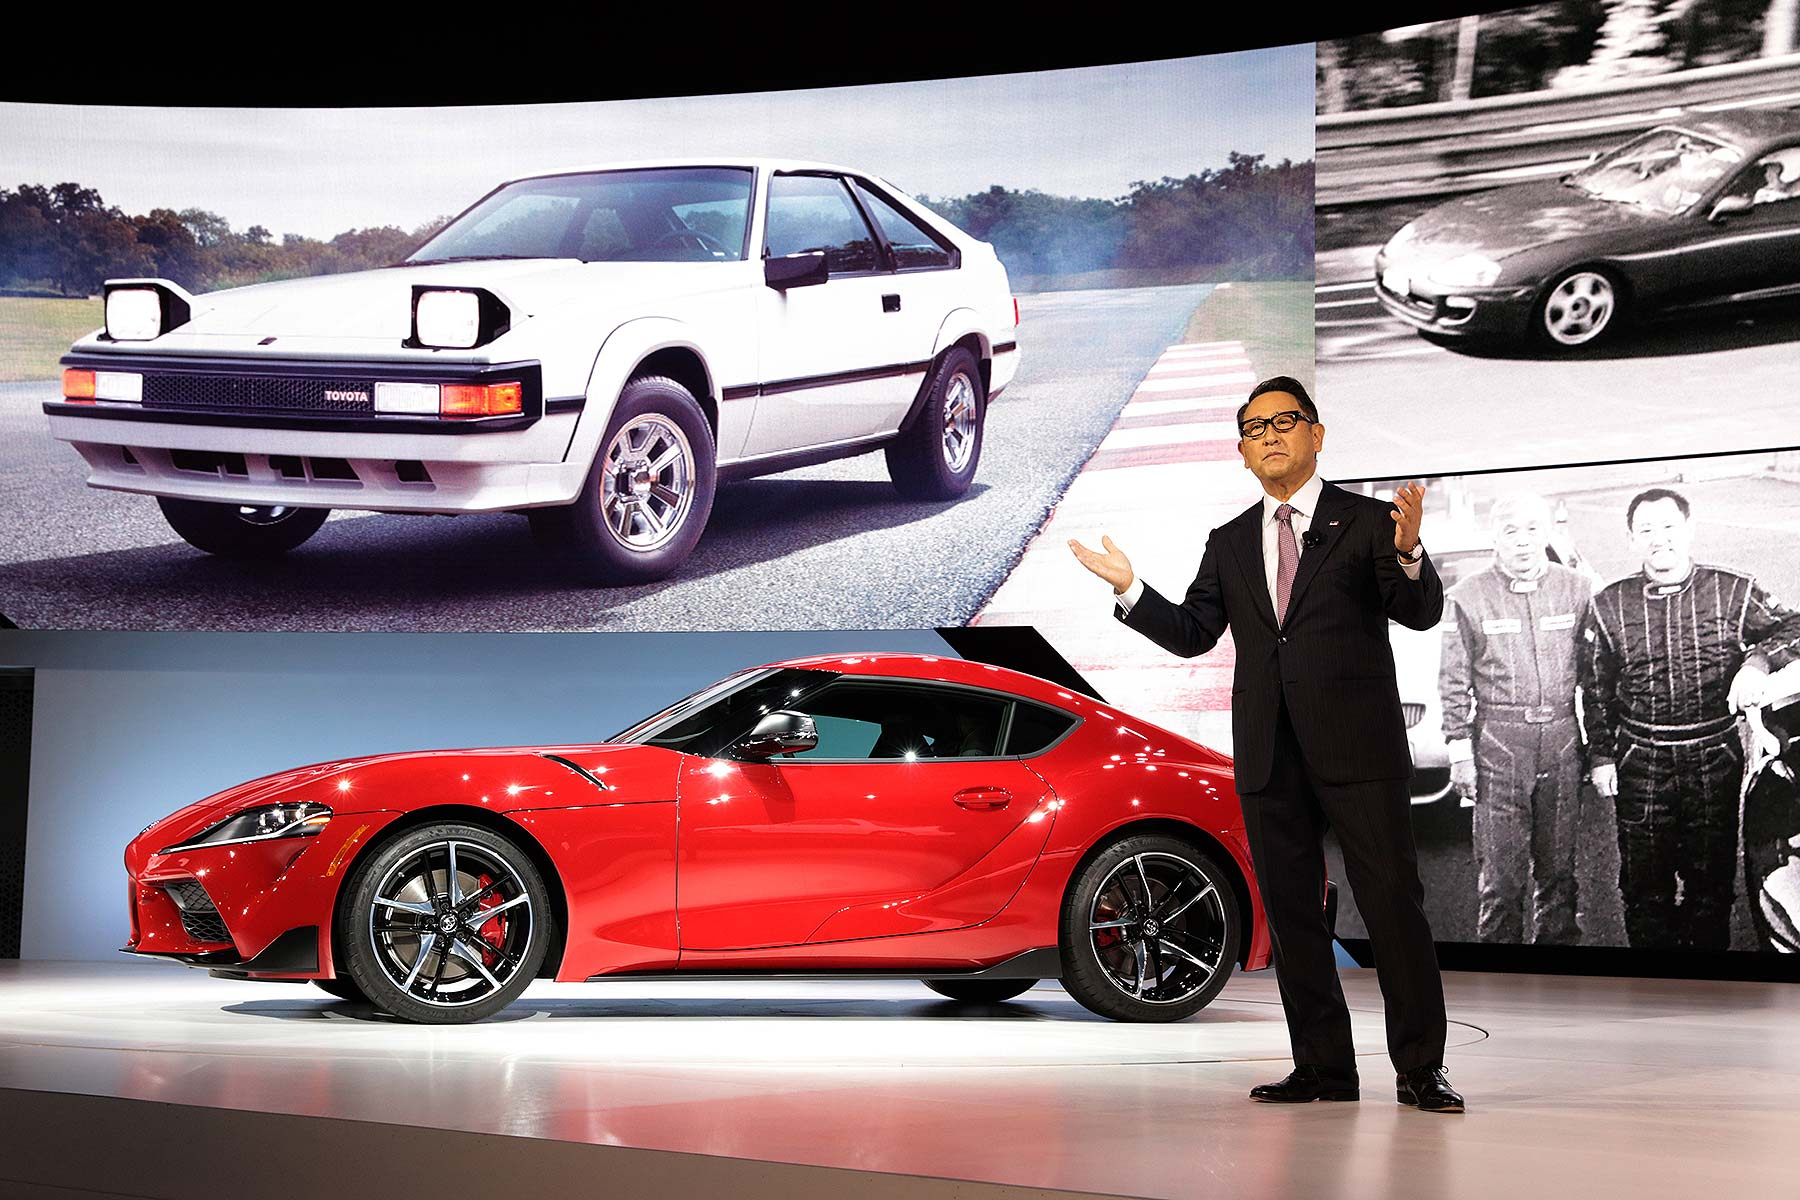 New Toyota Supra revealed at Detroit Auto Show 2019